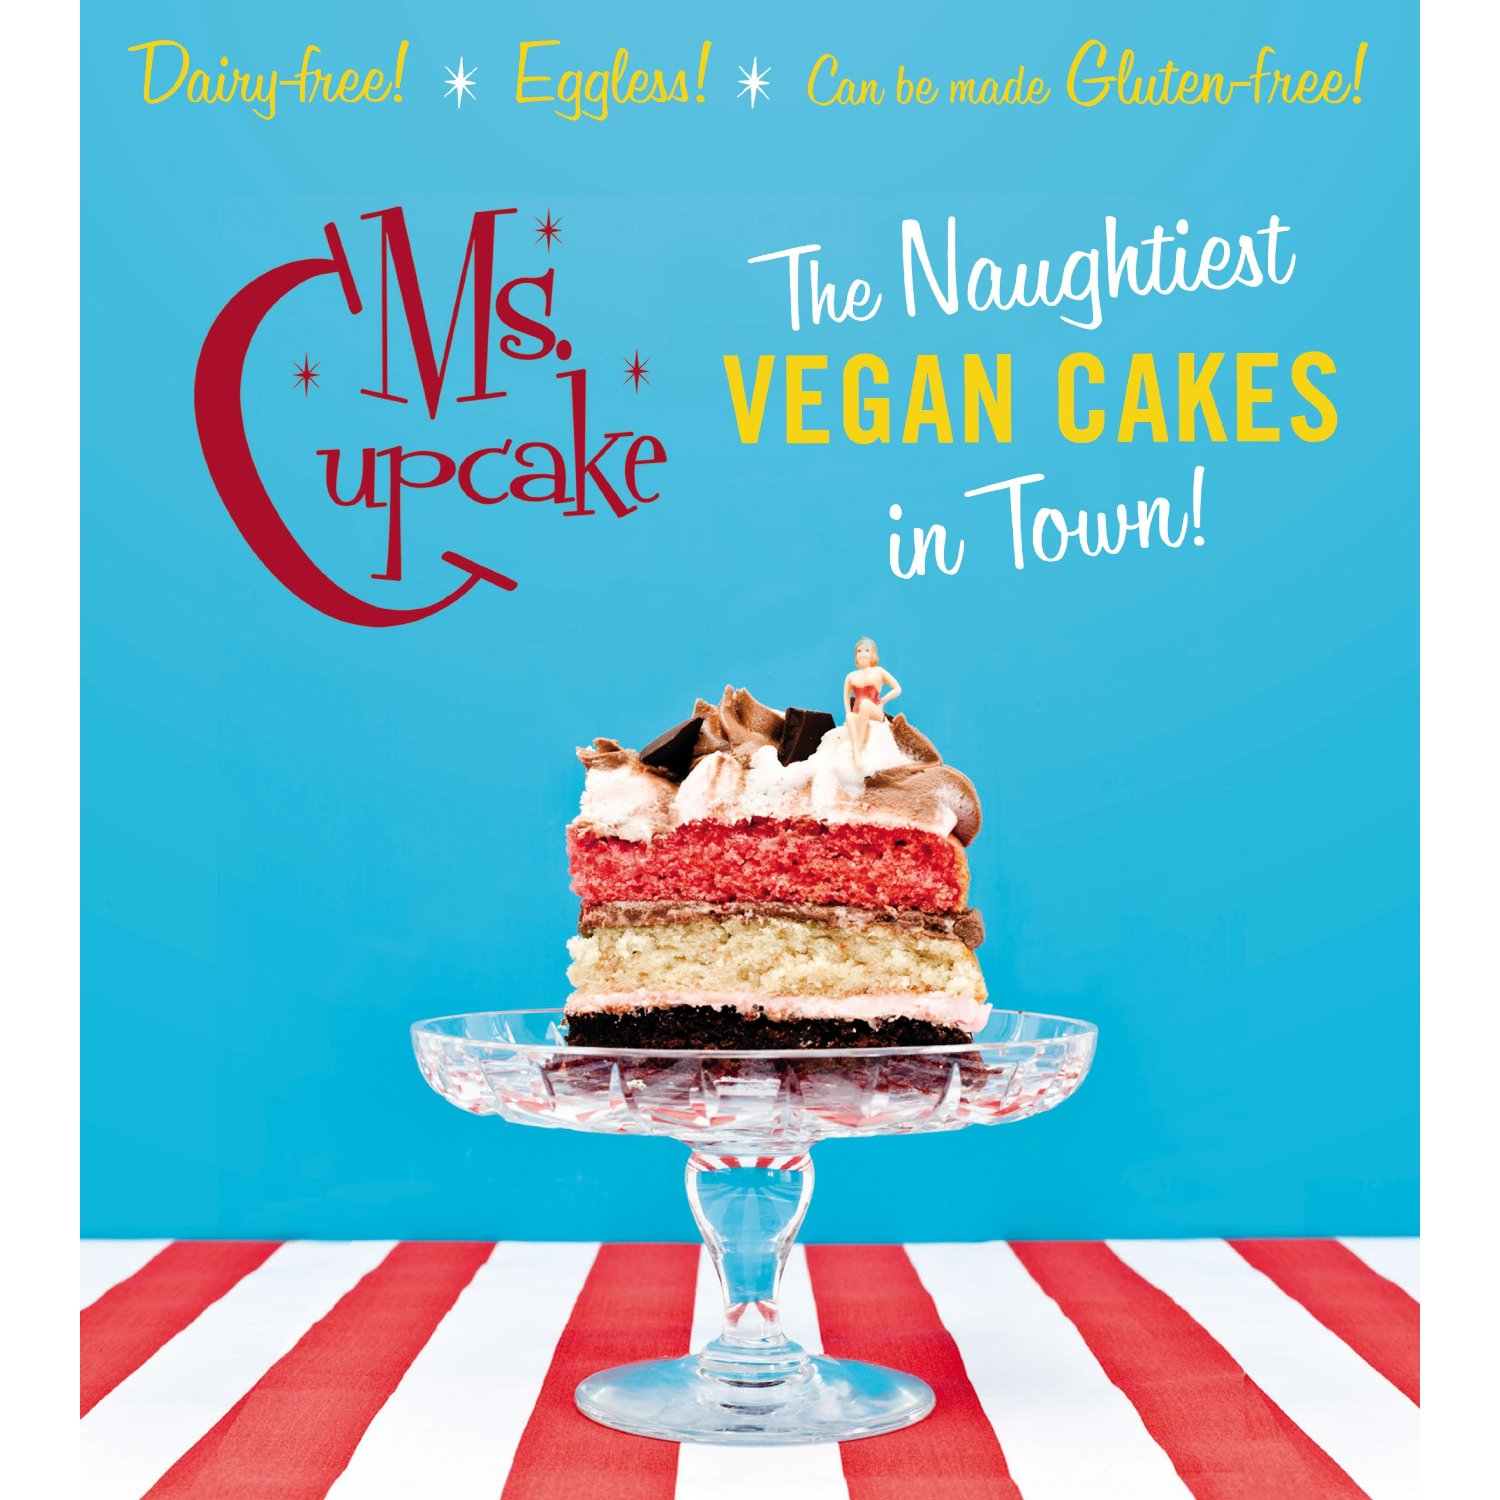 Ms. Cupcake: The Naughtiest Vegan Cakes in Town